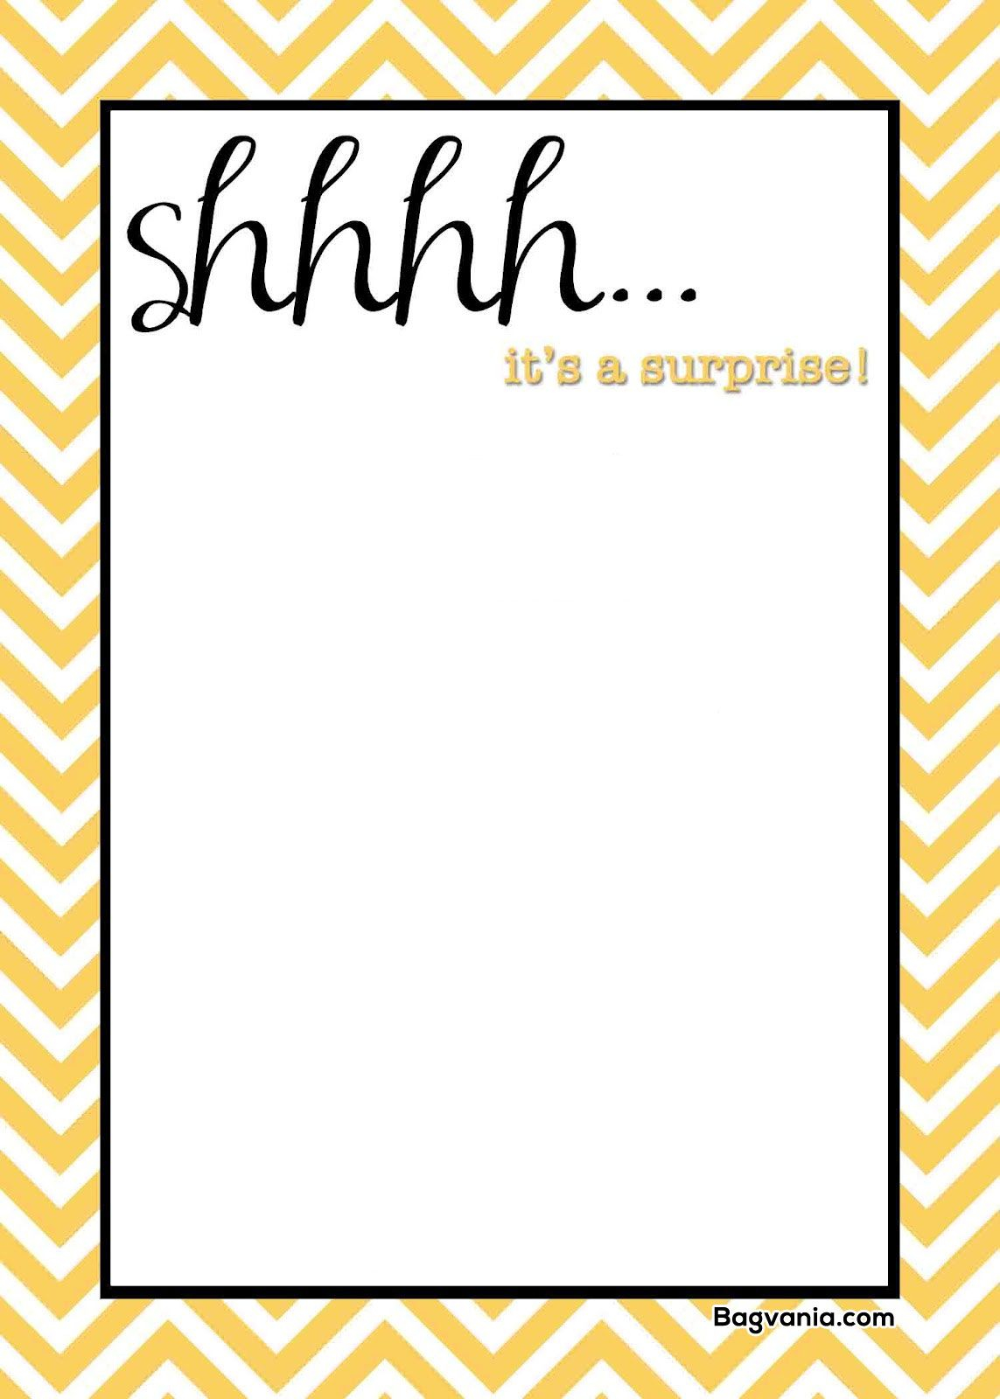 Surprise Party Invitations Templates Business Template Ideas Party Invite Template Surprise Birthday Party Invitations Surprise Party Invitations